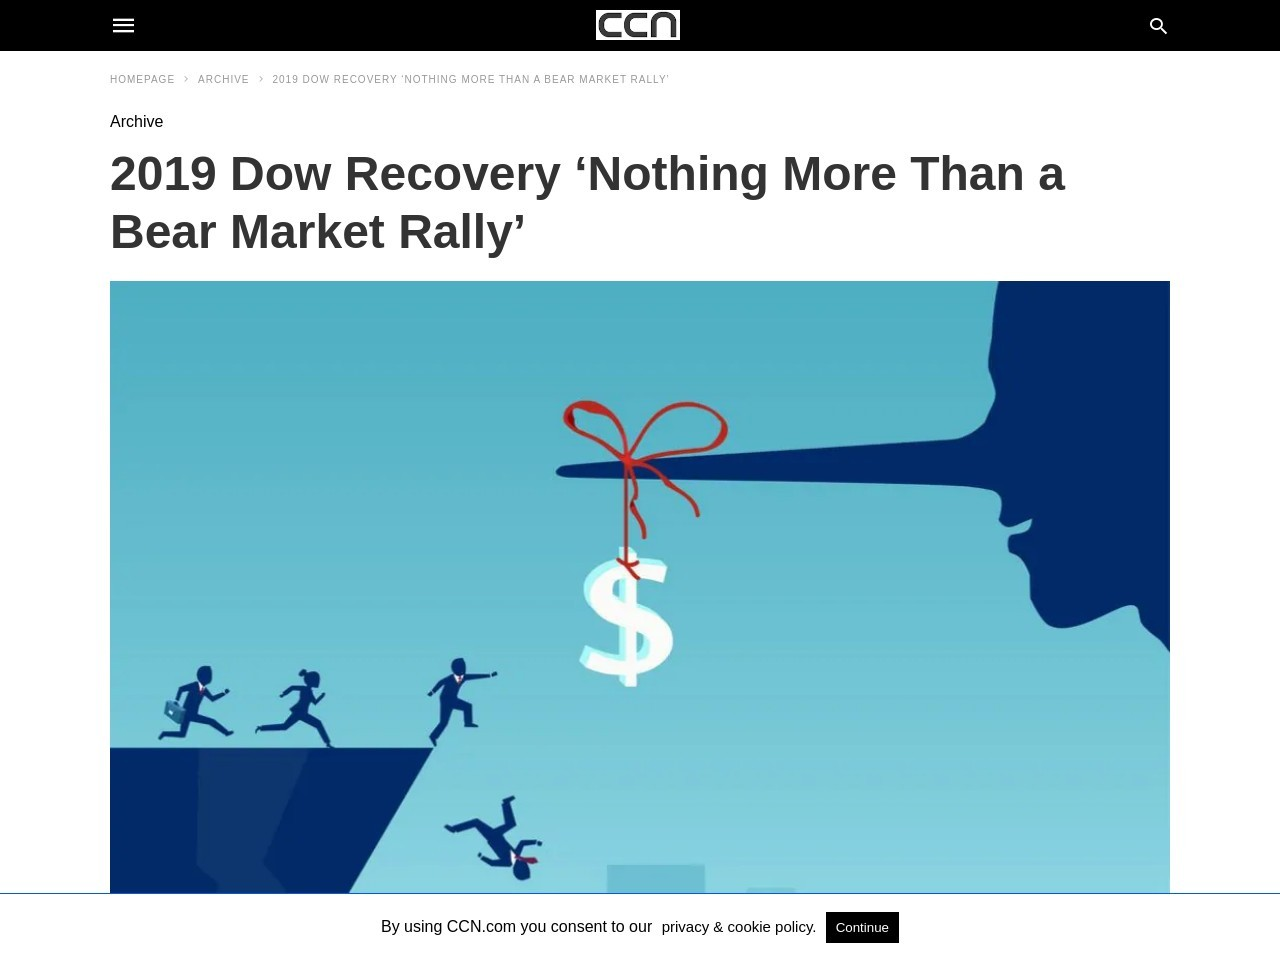 2019 Dow Recovery 'Nothing More Than a Bear Market Rally'